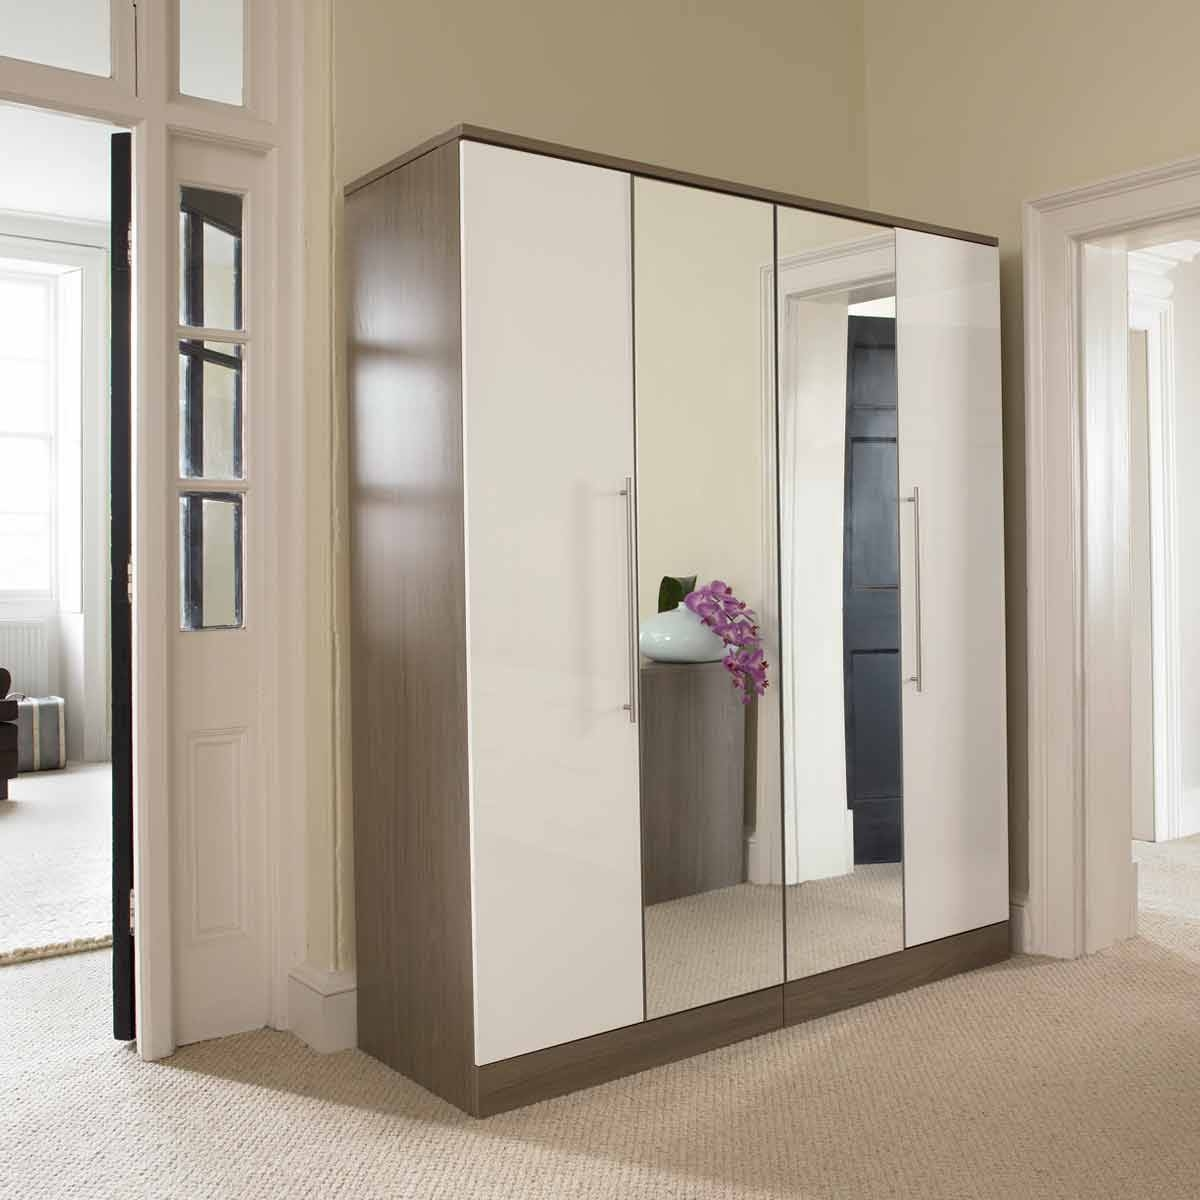 Sofa Wardrobe Closet With Mirror Doors Mirrored | Winafrica for Wardrobes With Mirror (Image 12 of 15)